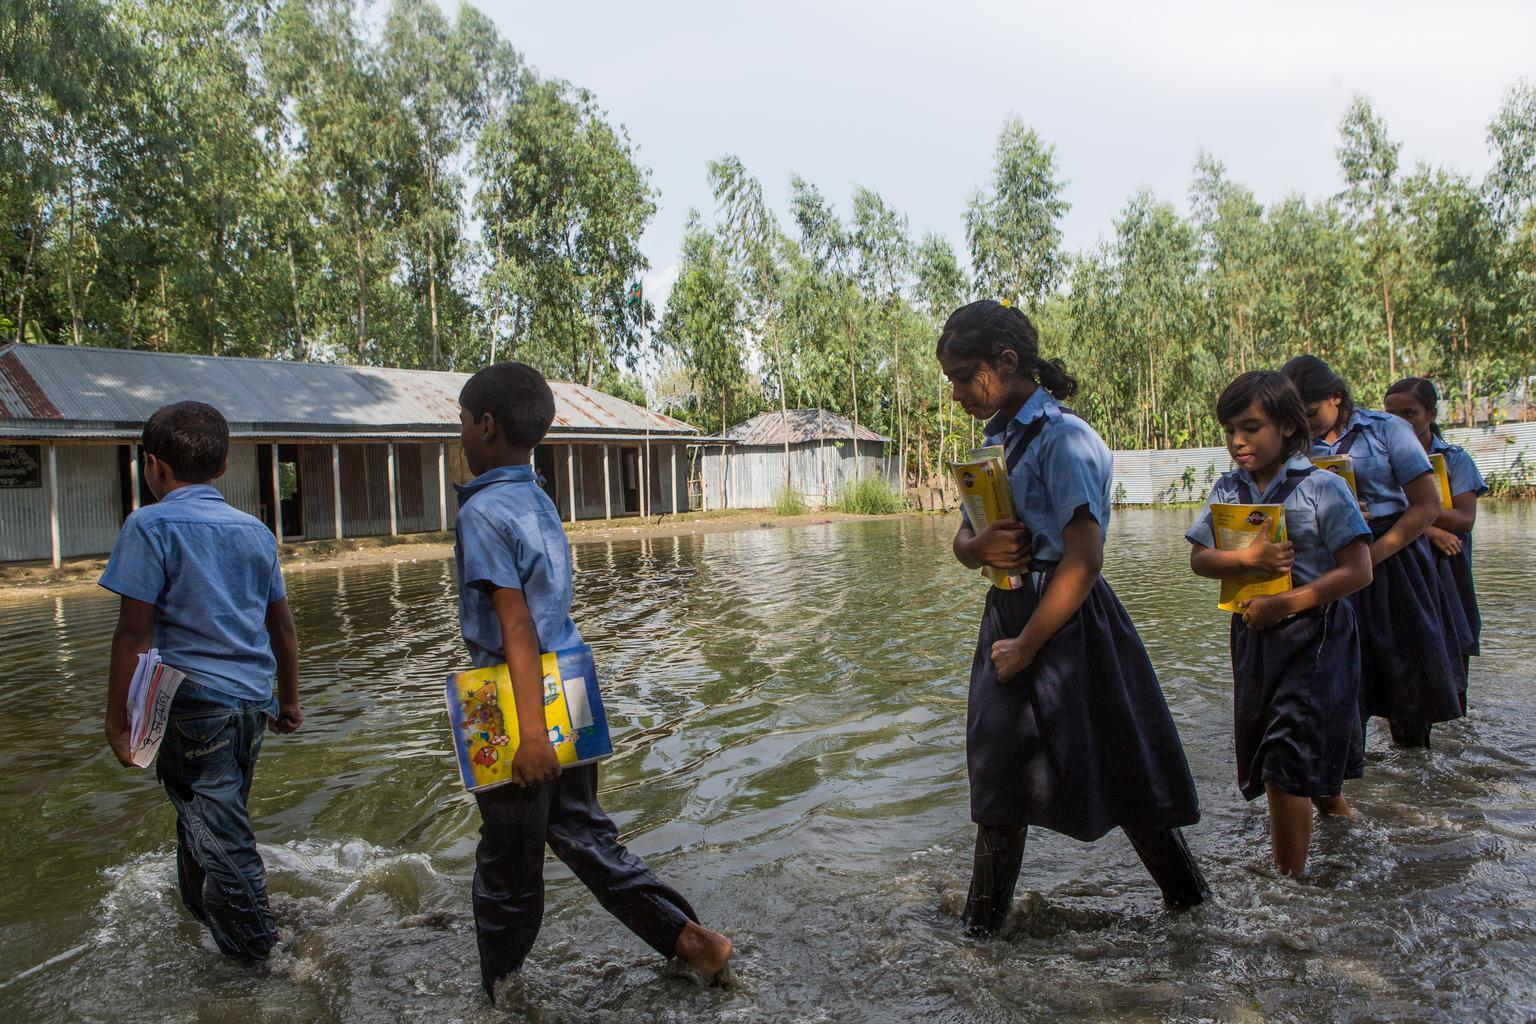 A group of uniformed students walk through water.